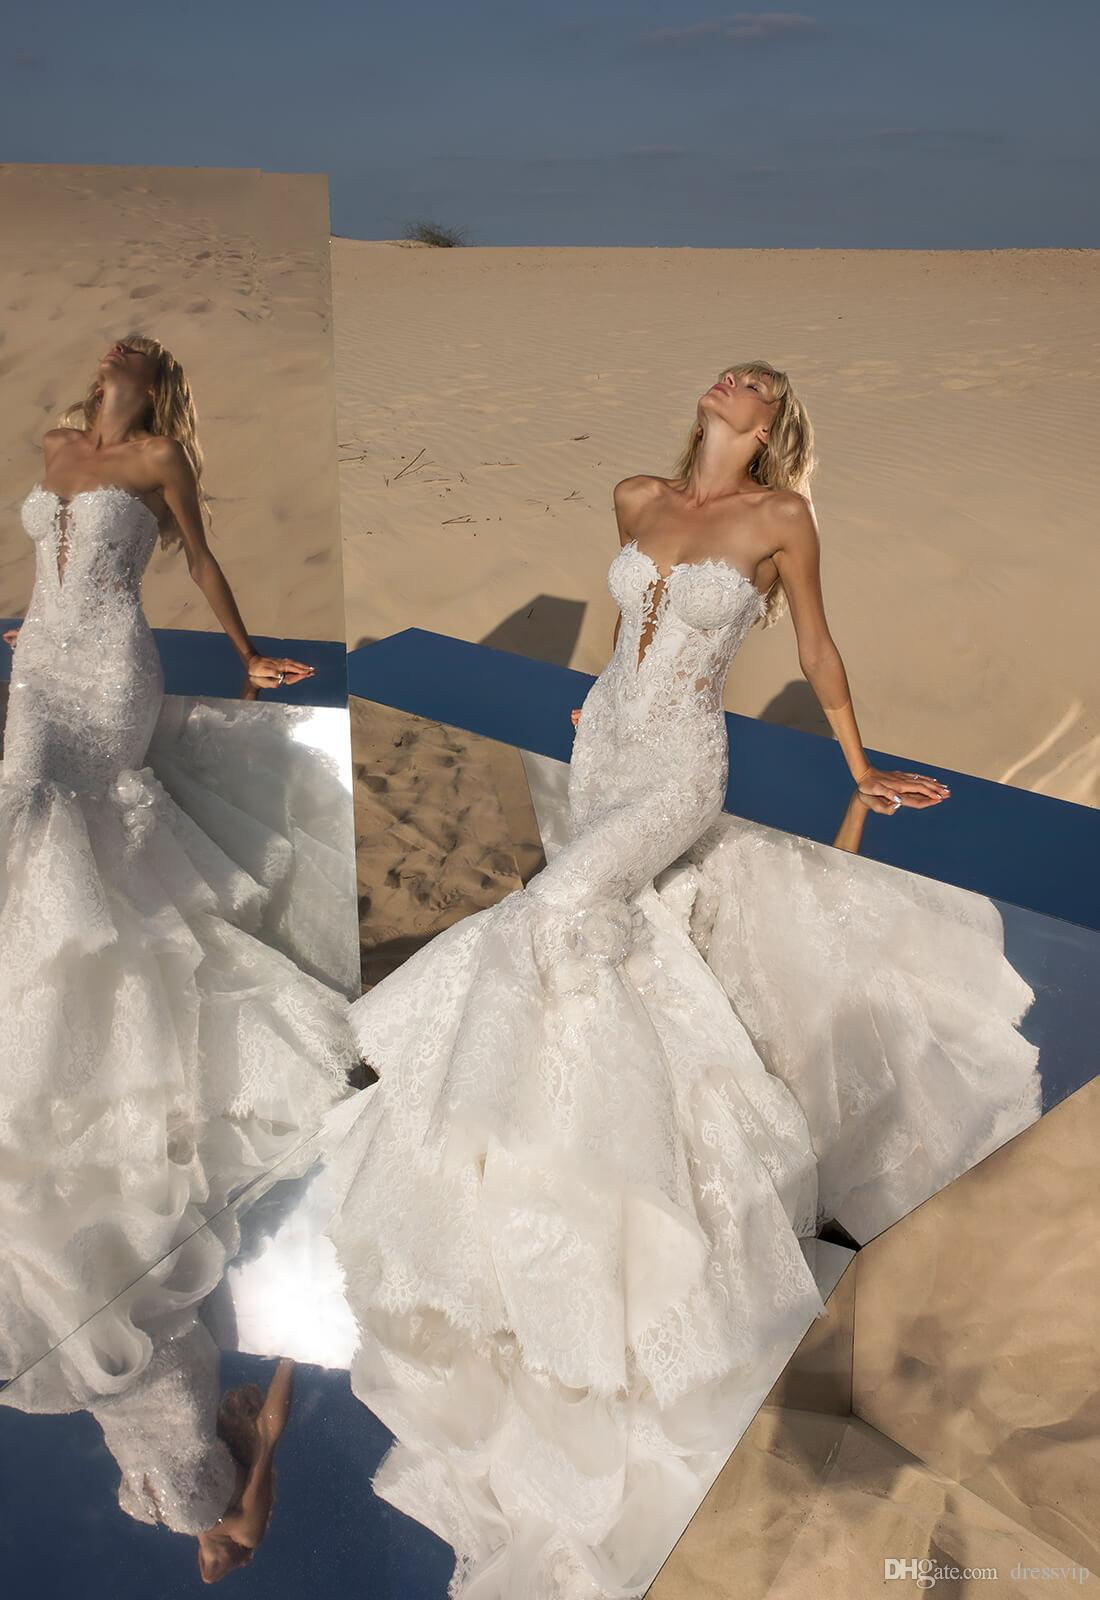 2018 Pnina Tornai Mermaid Wedding Dresses Sweetheart Lace Tulle Applique Sweep Train Sexy Beach Bridal Dress Backless Lace Up Wedding Gowns